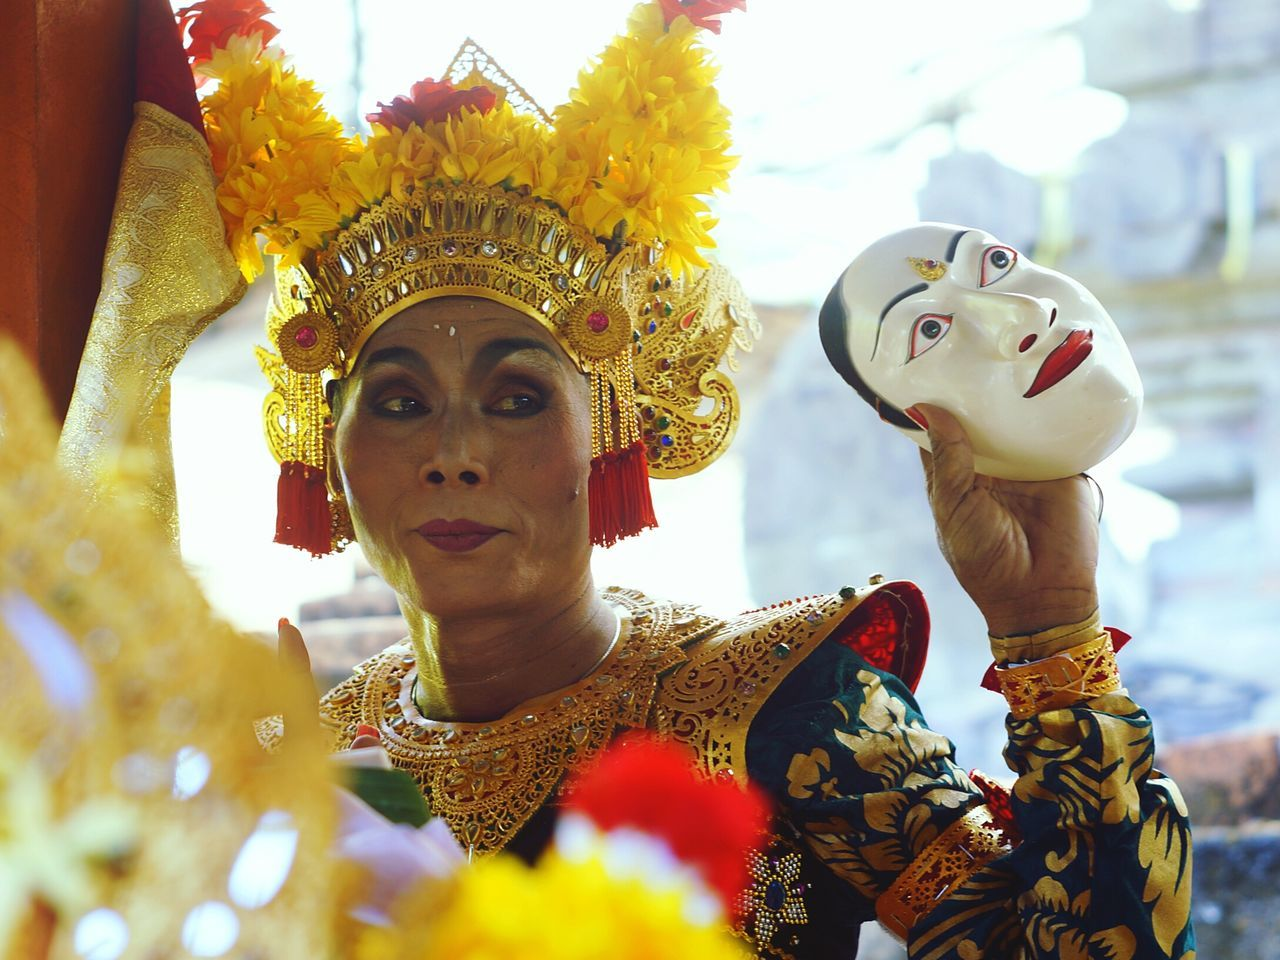 The dancer Uniqueness Character Headshot Arts Culture And Entertainment One Person Outdoors People Day One Man Only Artist Dancer Istockphoto Eyeem Market Week On Eyeem EyeEm Indonesia Bali, Indonesia